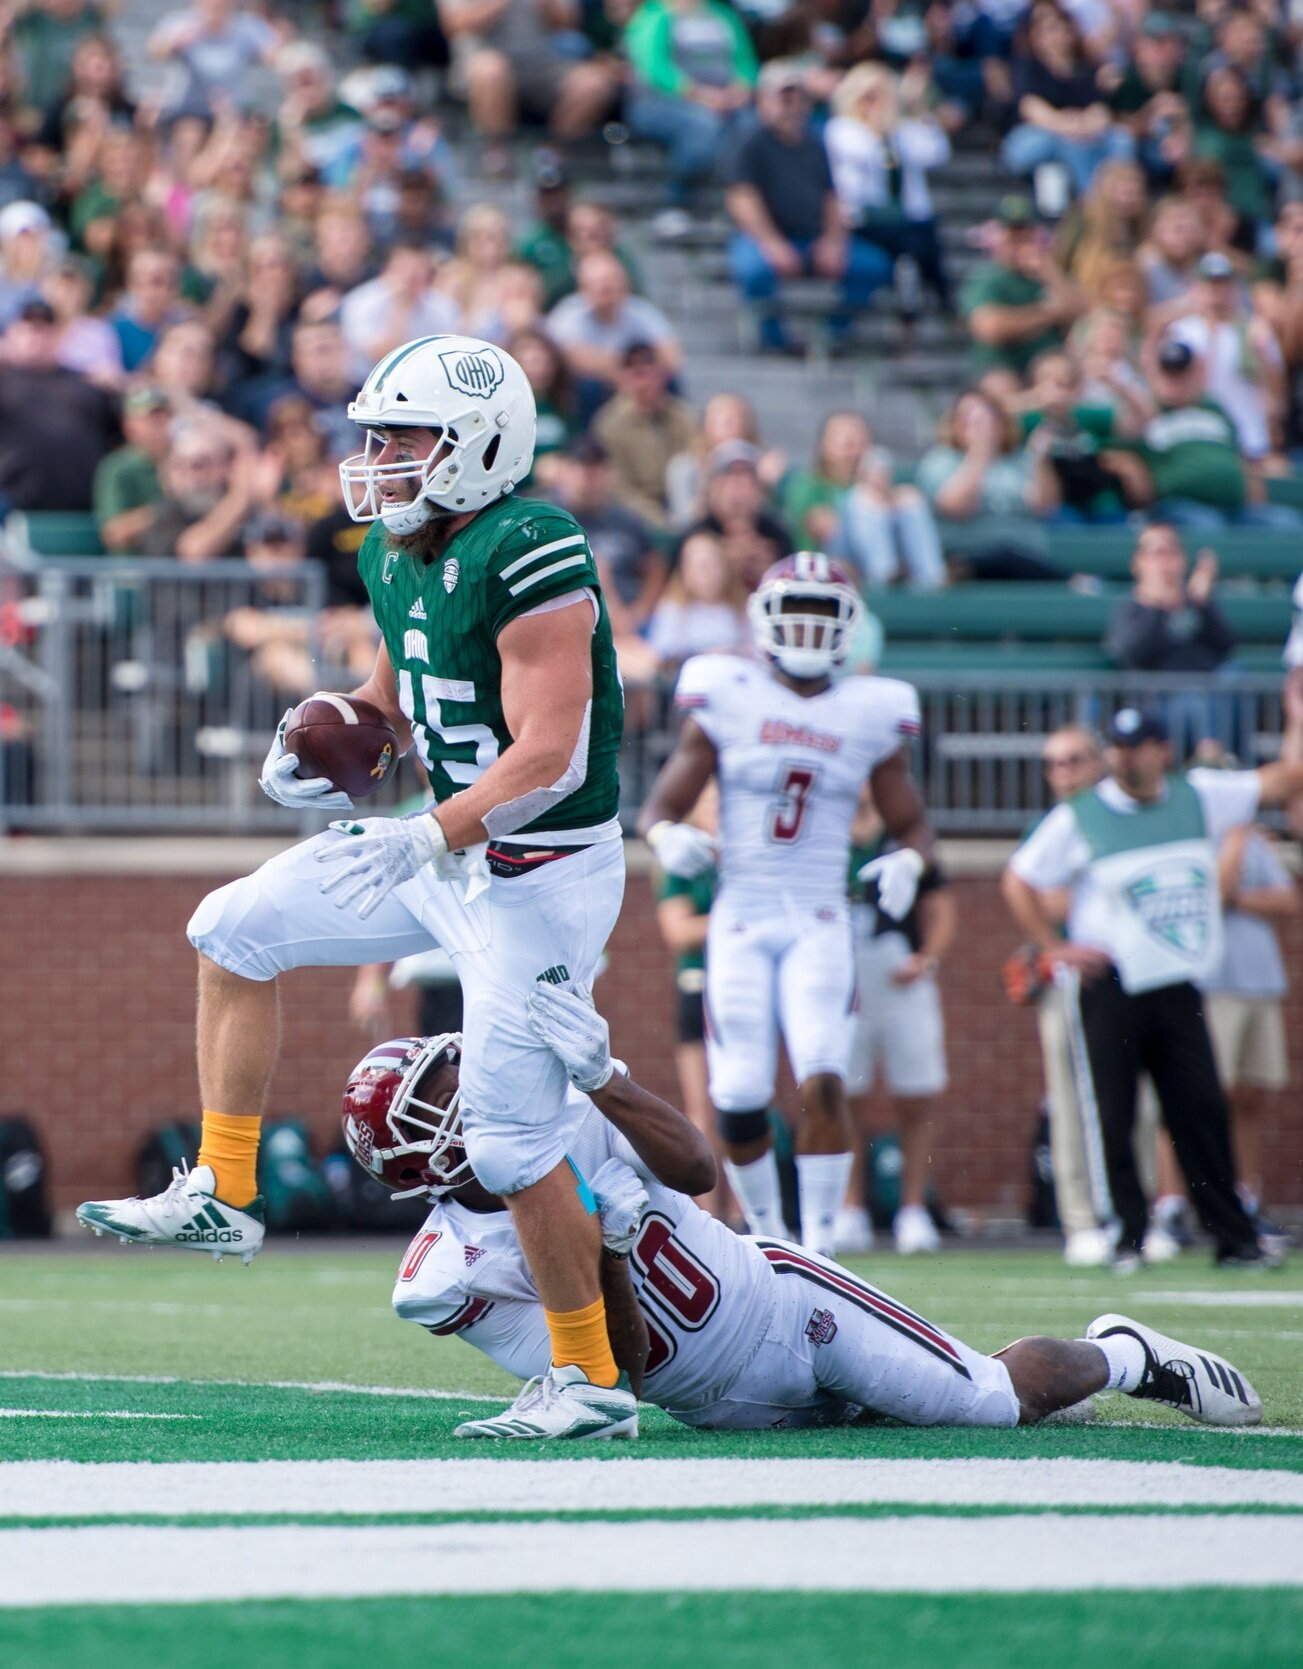 Ohio University Bobcats running back AJ Ouellette walks the ball into the touchdown during the game against UMass on Sept. 29, 2018.